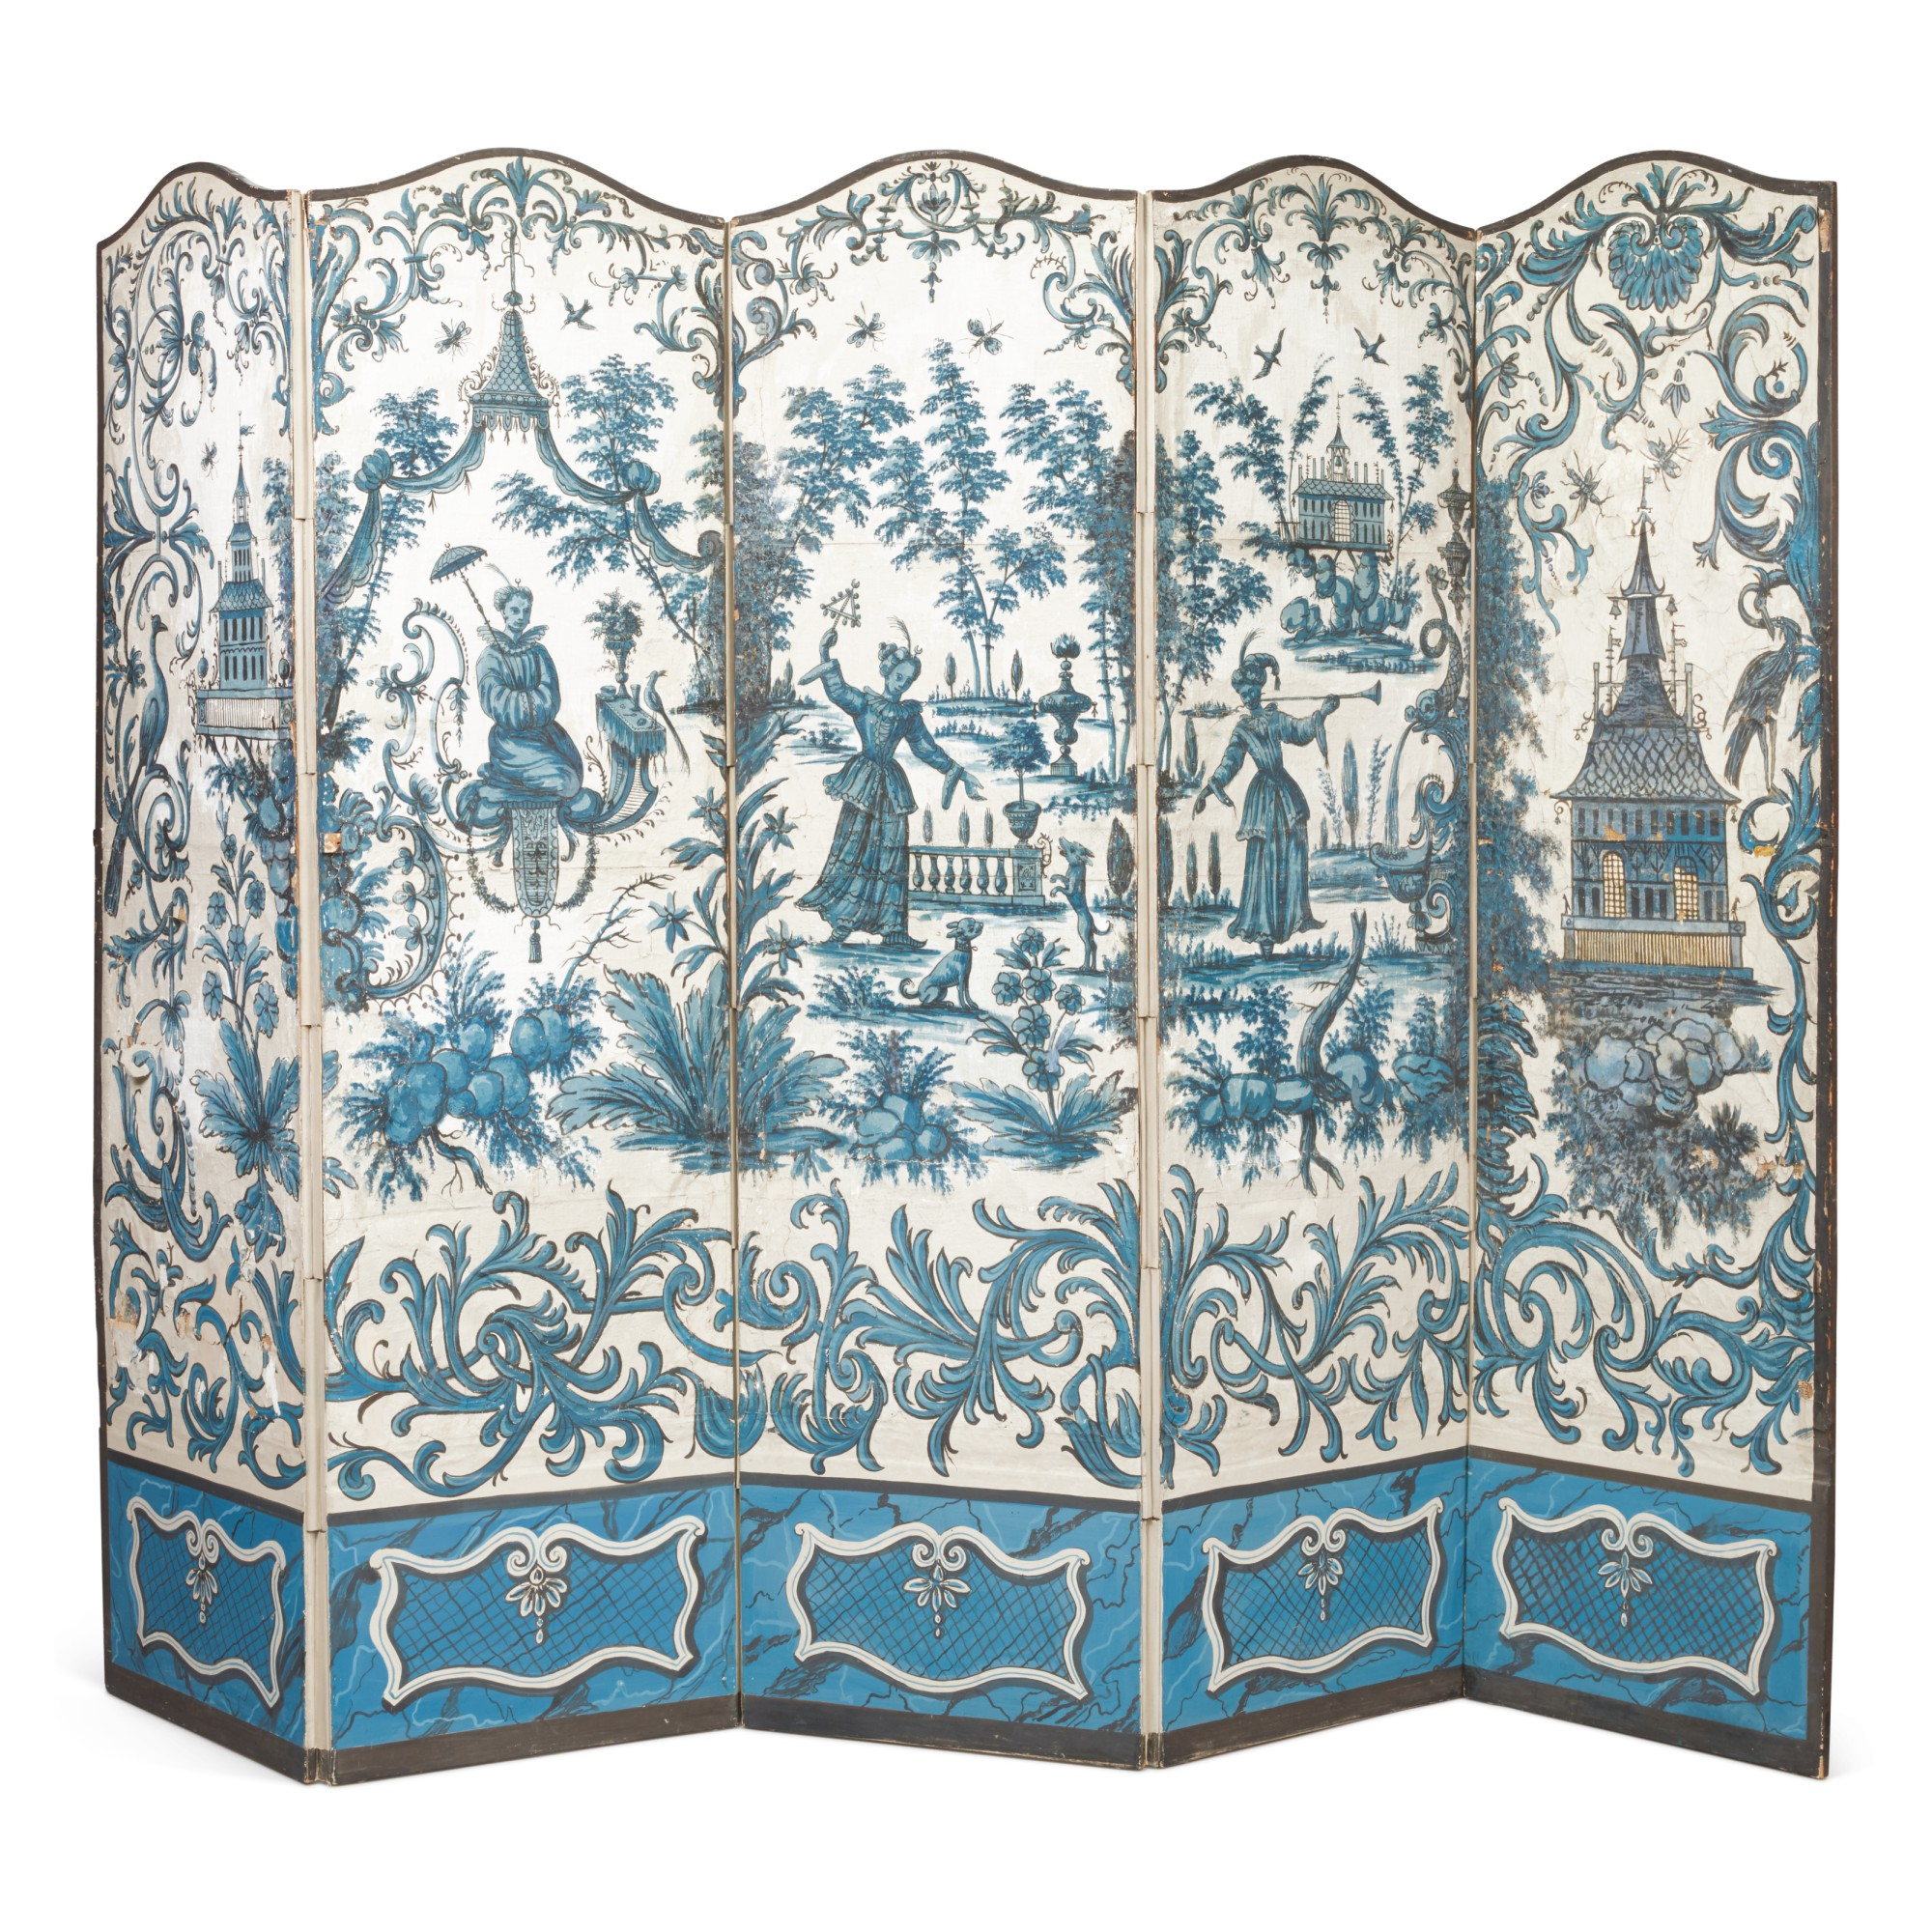 A Louis Xv Five Fold Blue And White Chinoiserie Wallpaper Screen